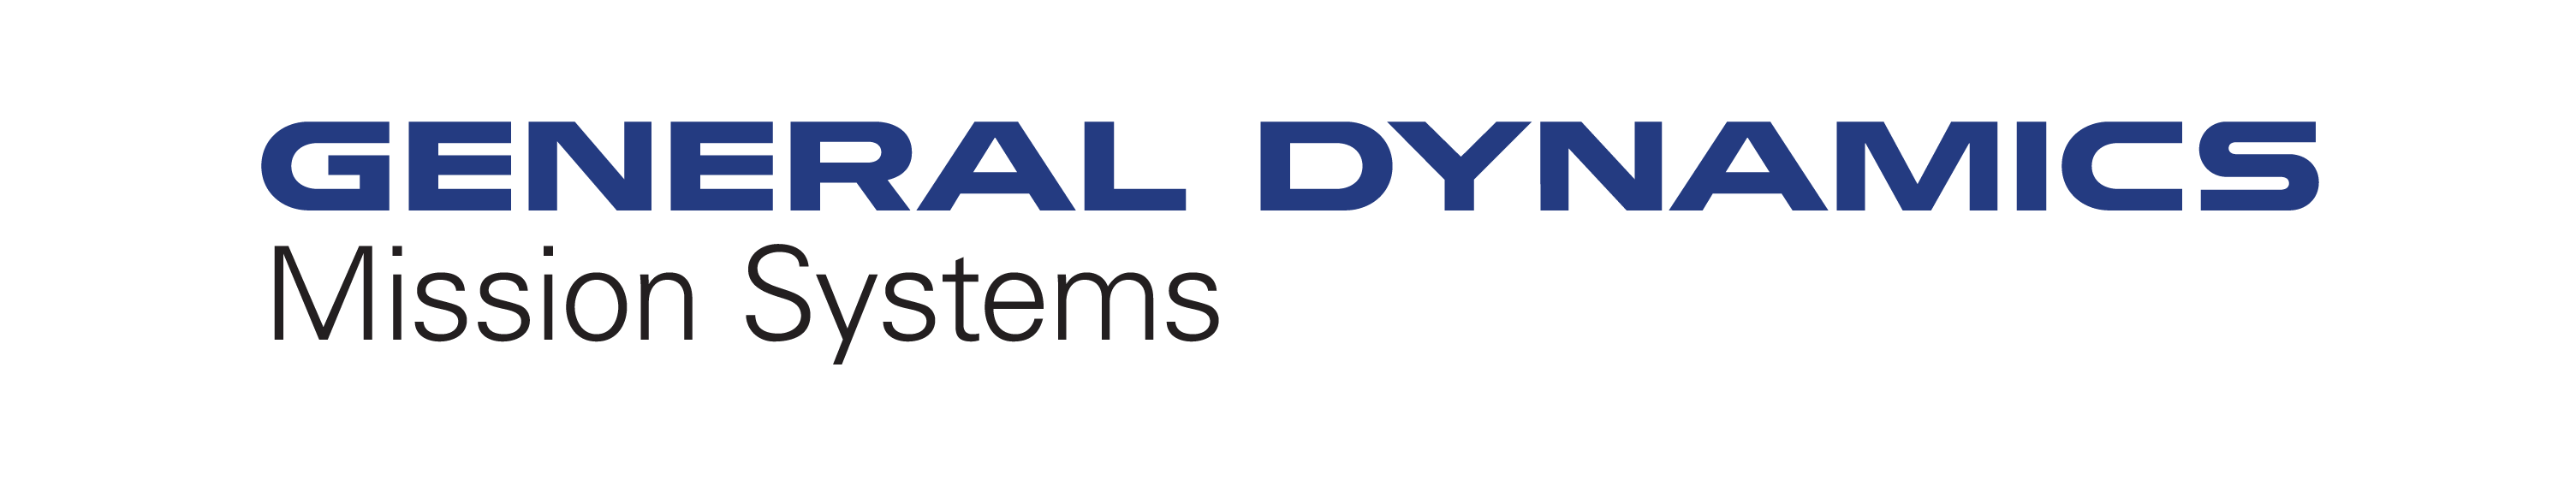 General Dynamics Mission Systems logo